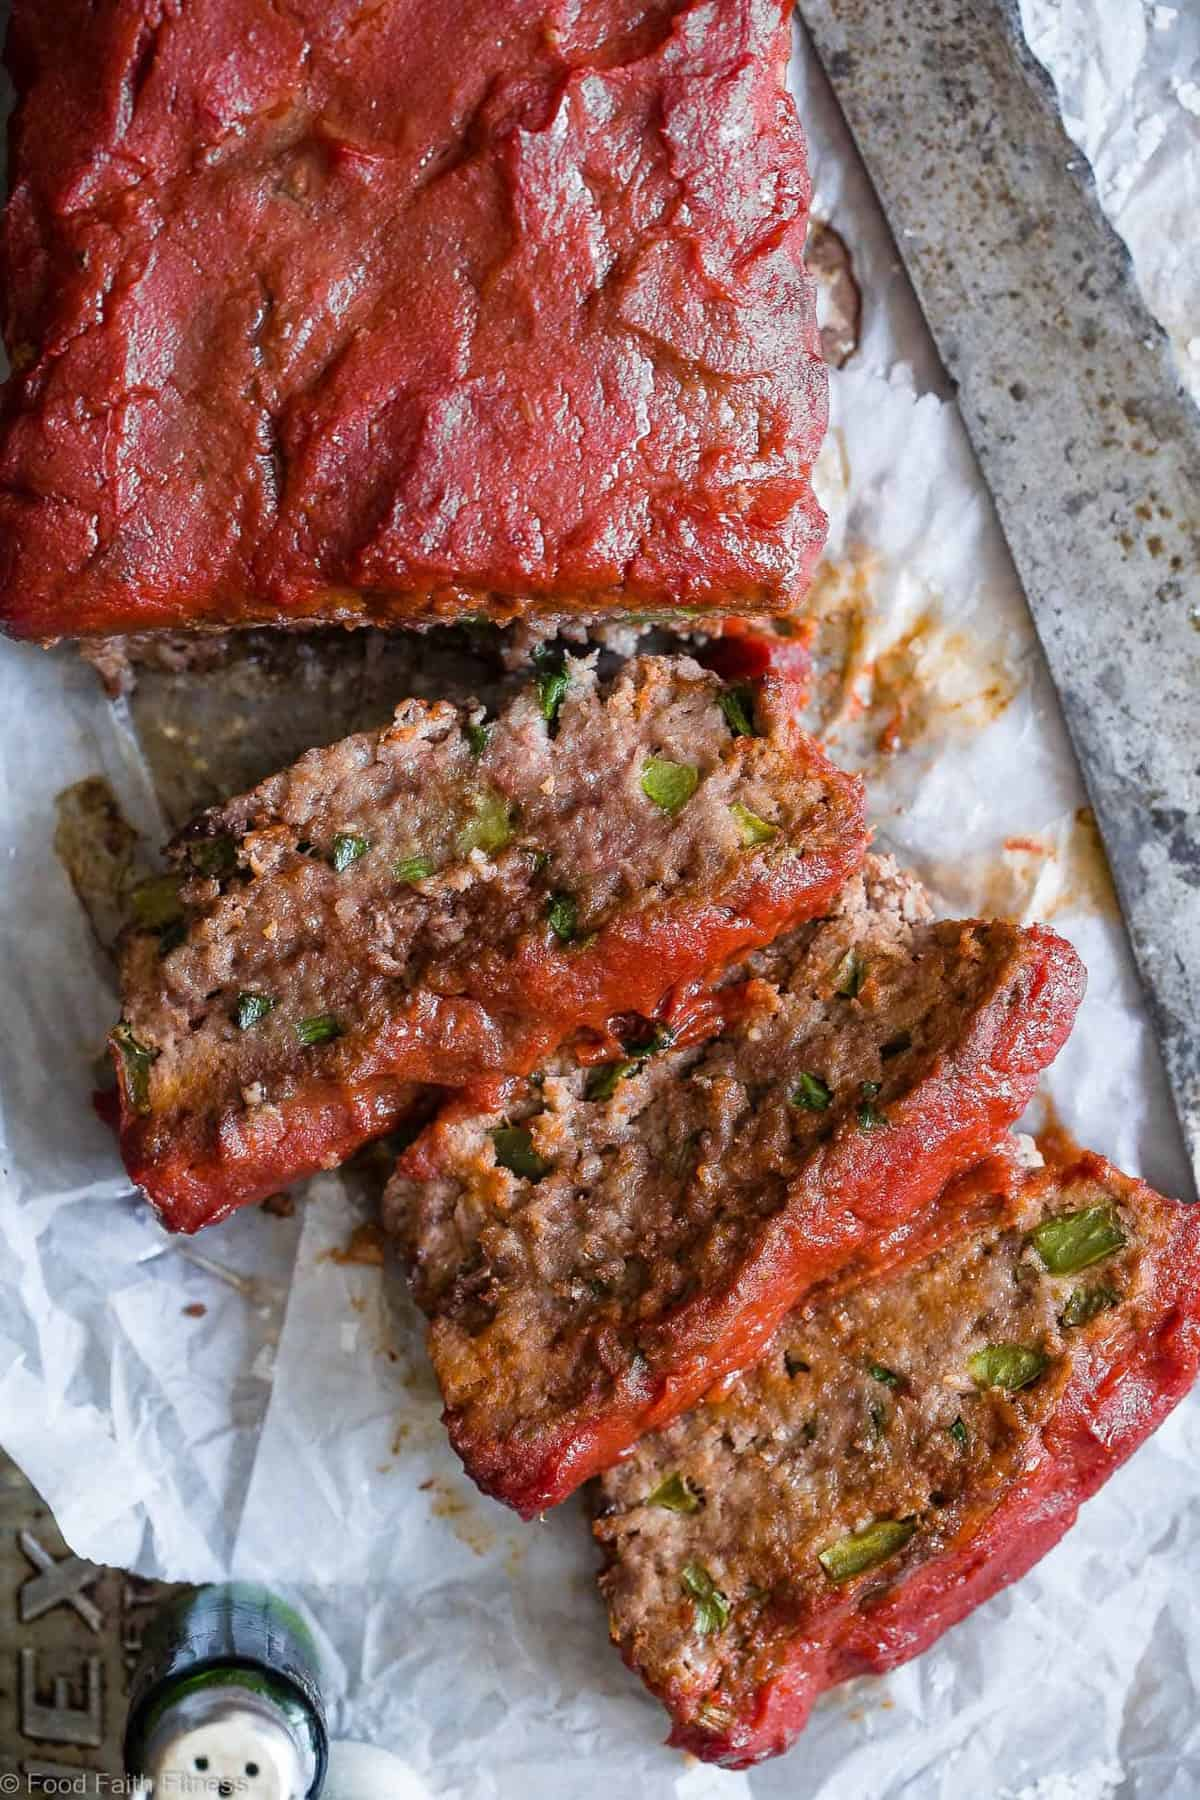 Easy Low Carb Paleo Meatloaf - This healthy Paleo and low carb Meatloaf is a family-friendly weeknight dinner that's gluten/grain/dairy/sugar free and whole30 compliant! Only 210 calories and picky eater approved! | #Foodfaithfitness | #Paleo #Whole30 #Keto #Glutenfree #LowCarb